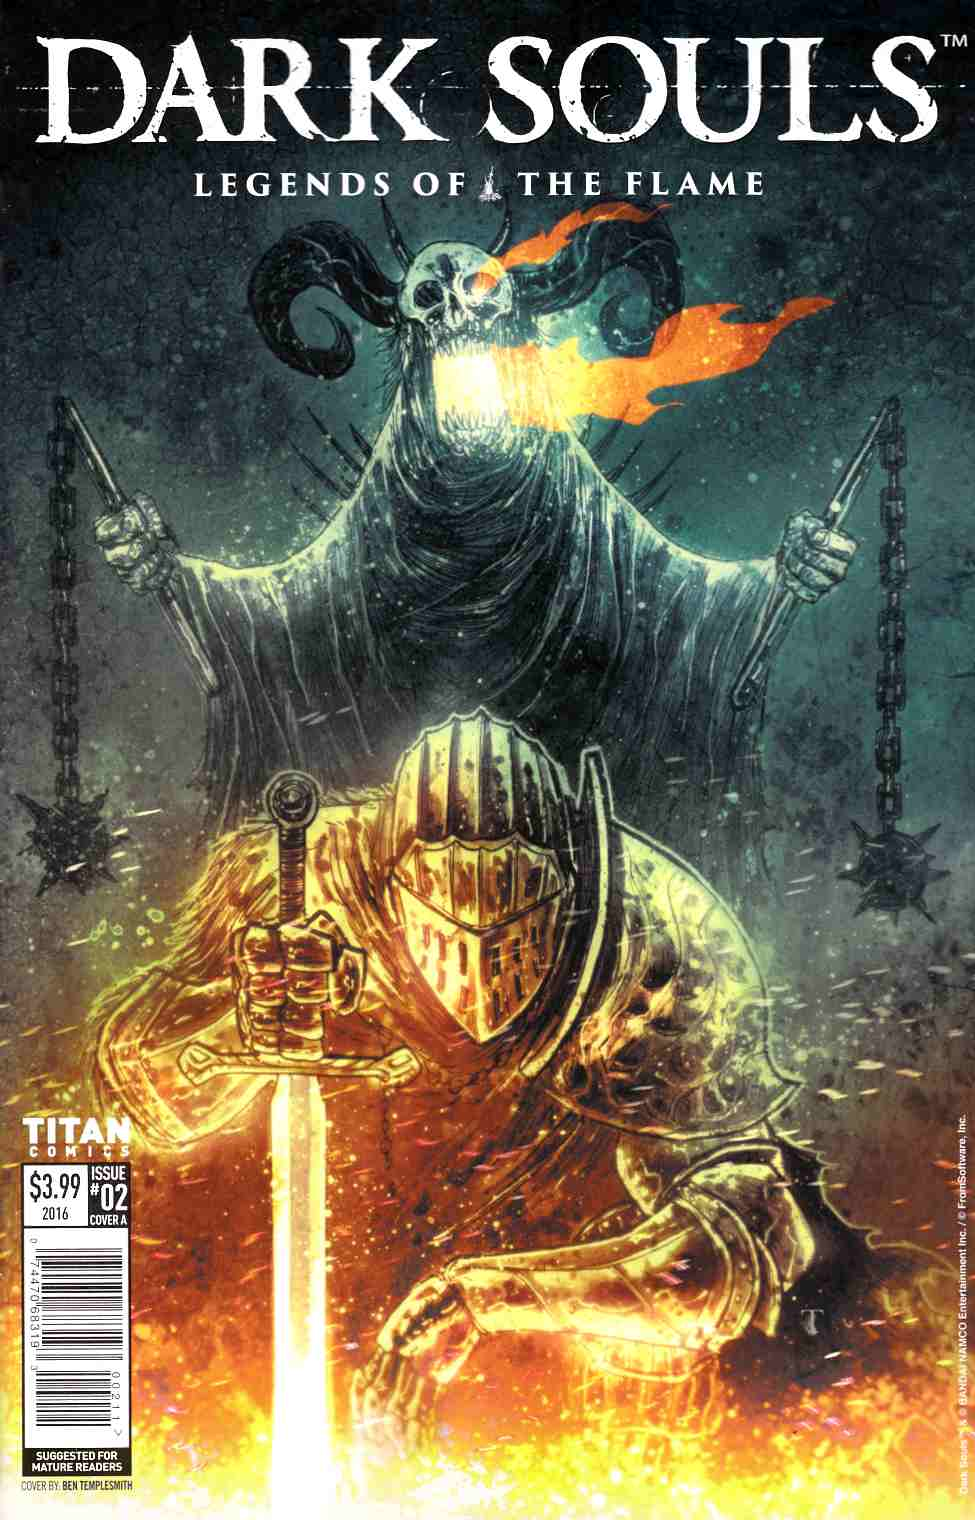 Dark Souls Legends of the Flame #2 Cover A [Titan Comic] THUMBNAIL